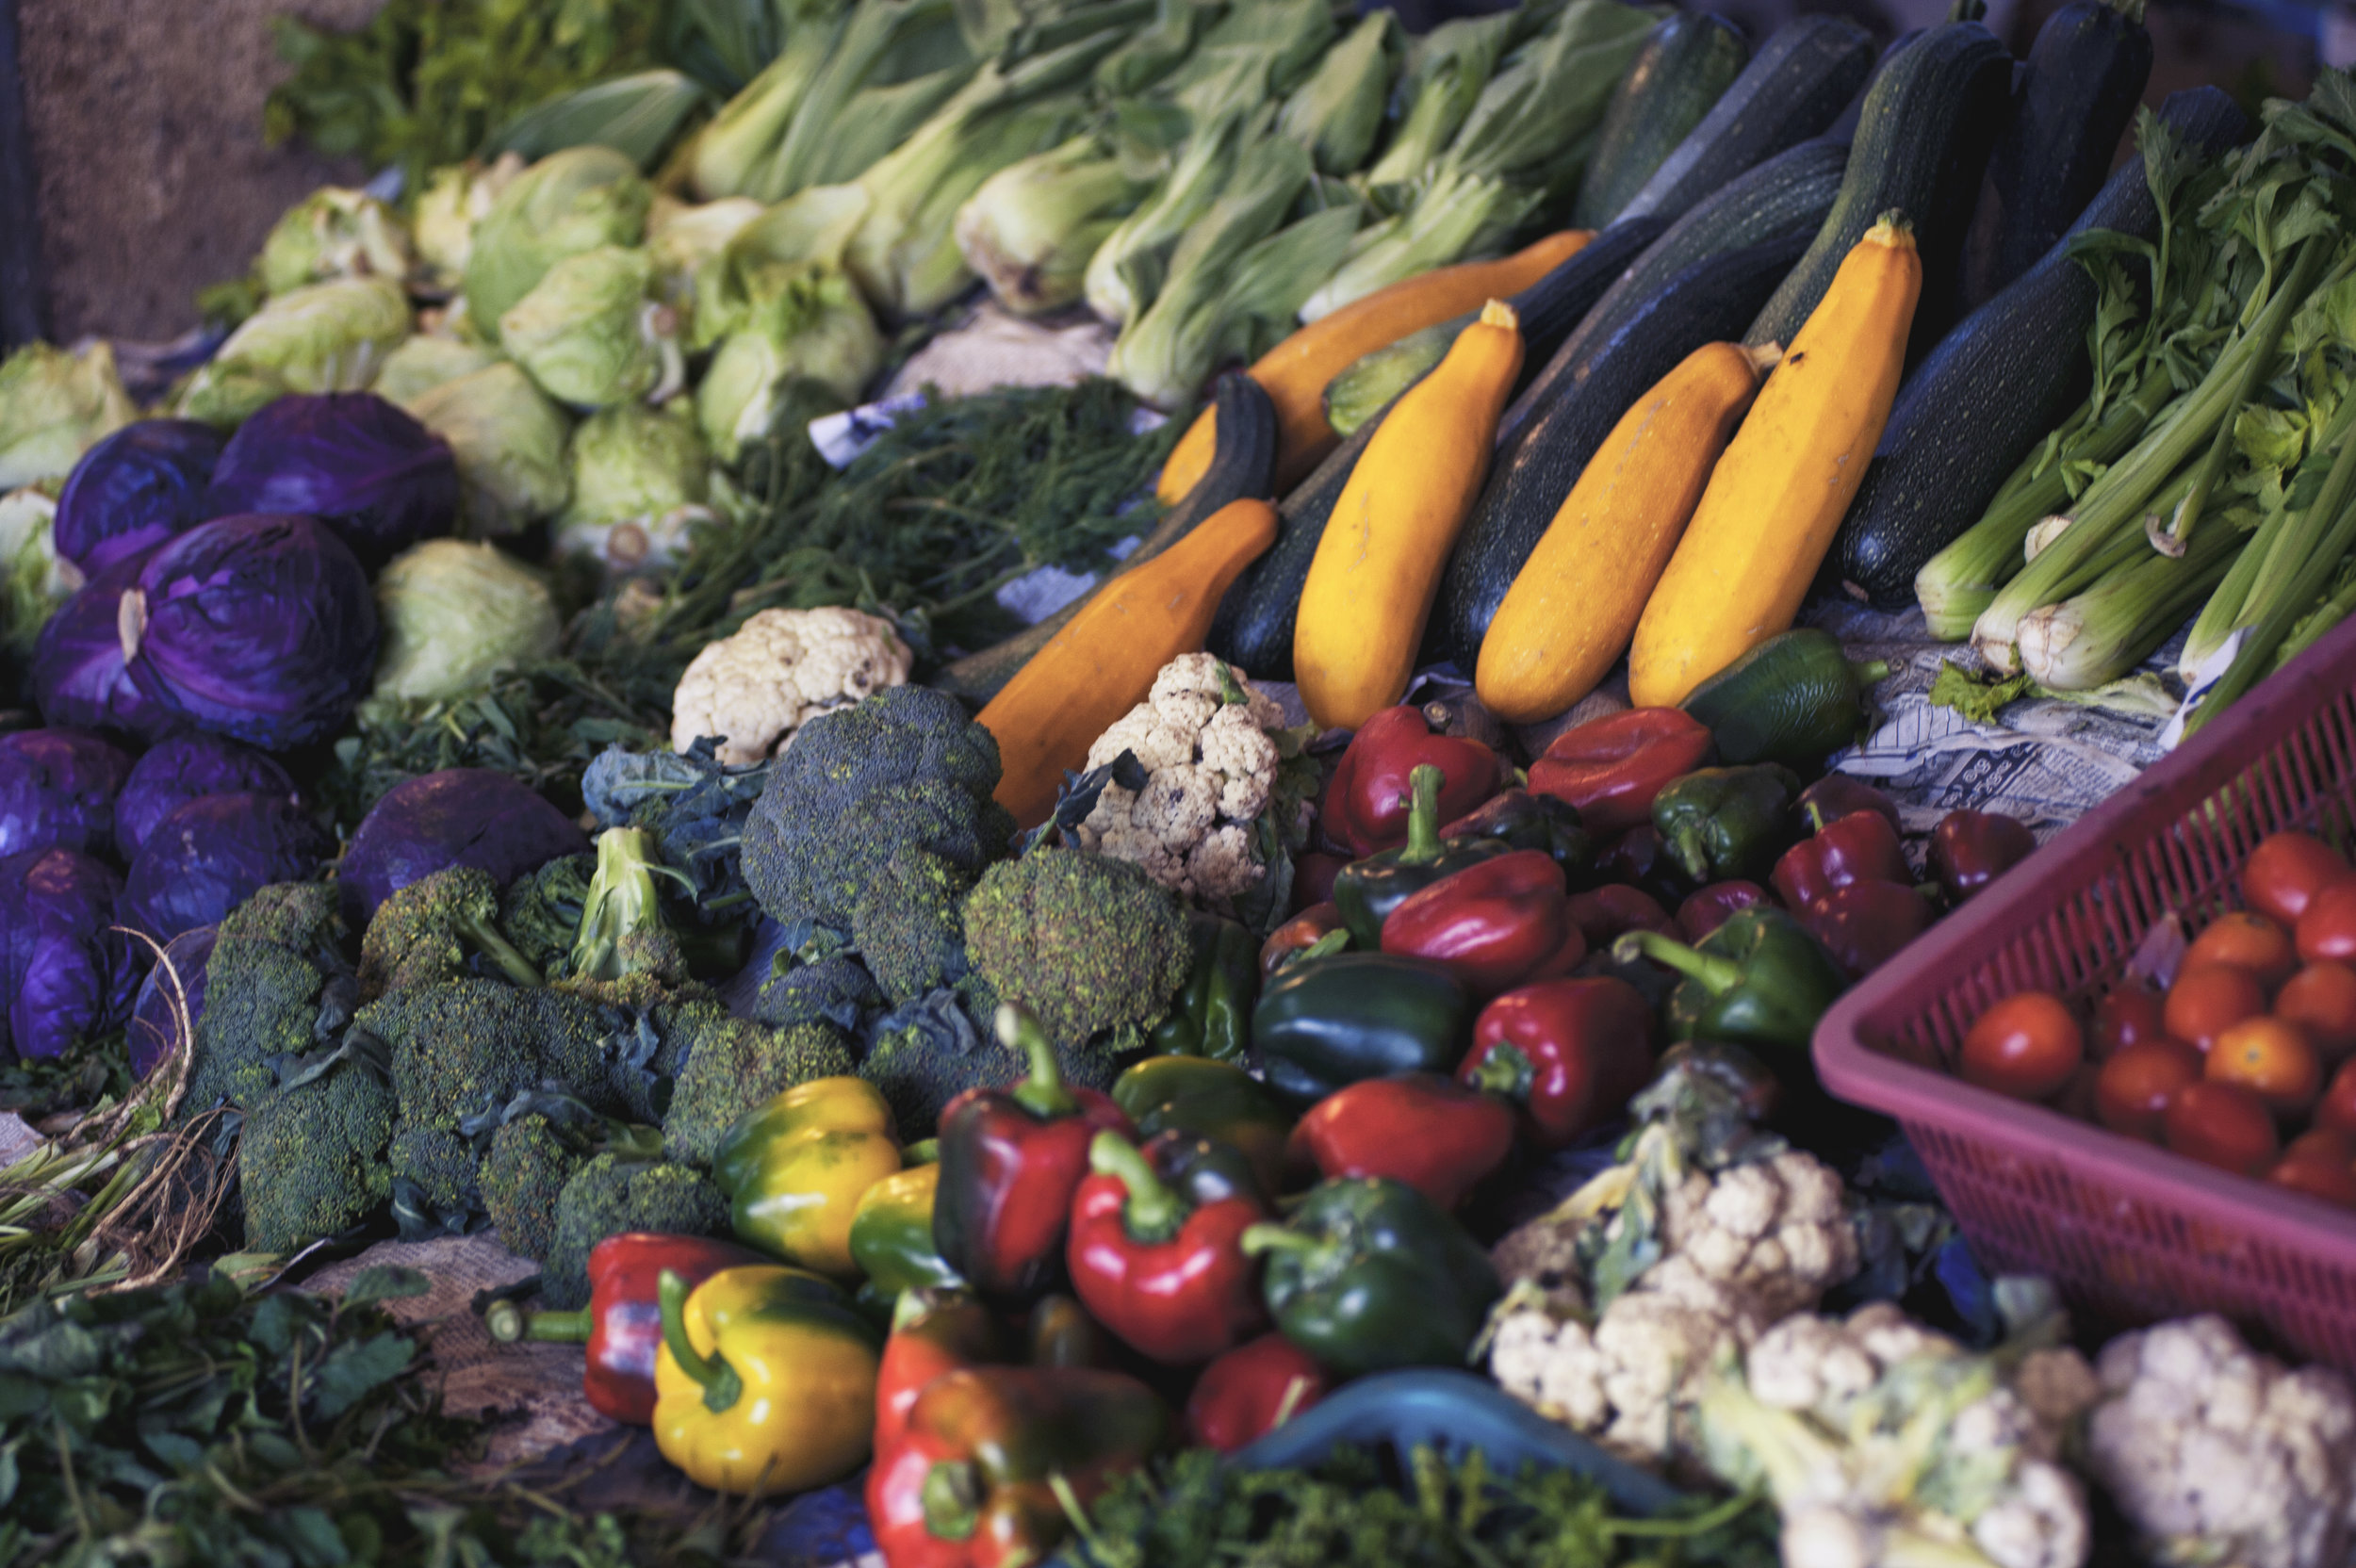 Is there a perfect MS diet? - Veggies are good!